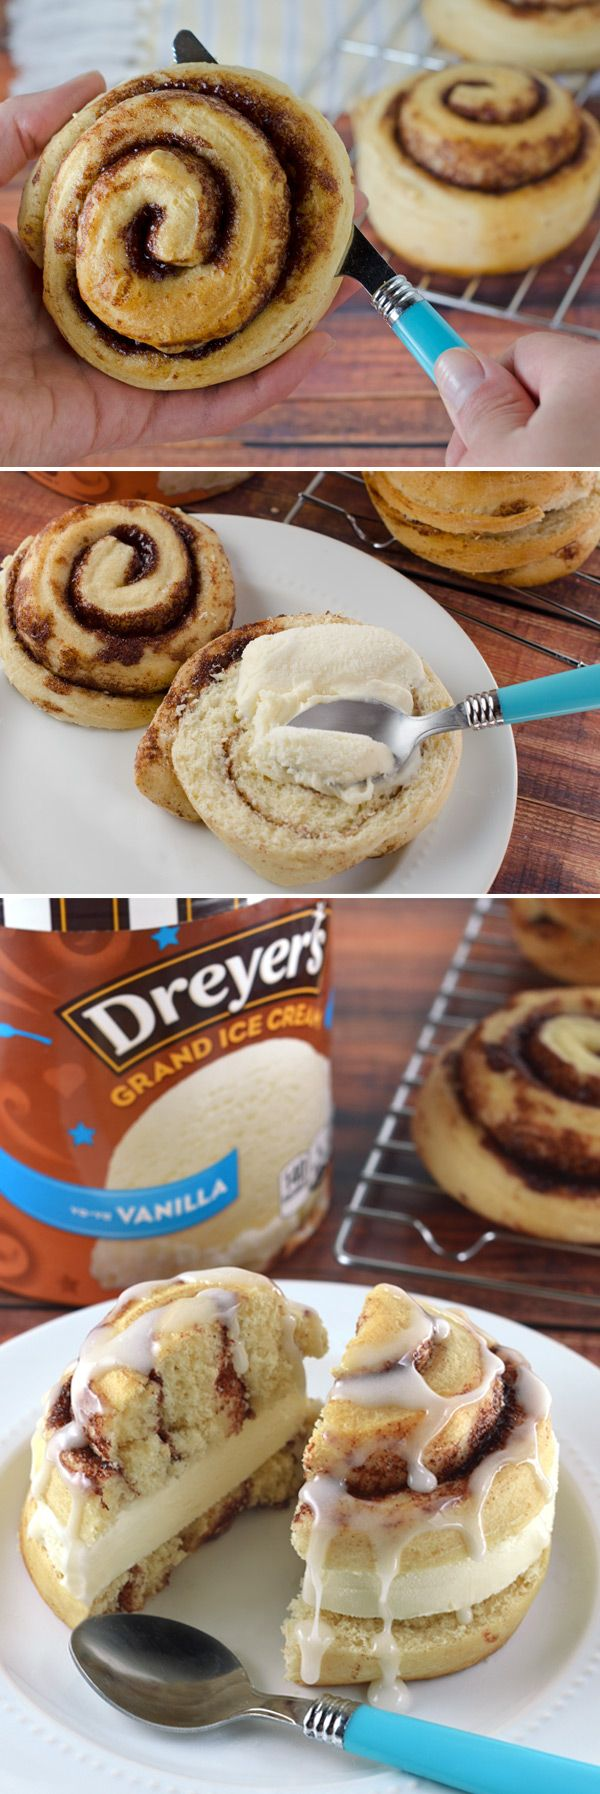 Dreyer's Cinnamon Roll Ice Cream Pie: Turn a breakfast dessert into something extraordinary with this simple, cinnamony-sweet ice cream treat! Just spread Dreyer's vanilla ice cream between warm cinnamon roll halves and slice into wedges for a single-serving dessert the whole family can enjoy!